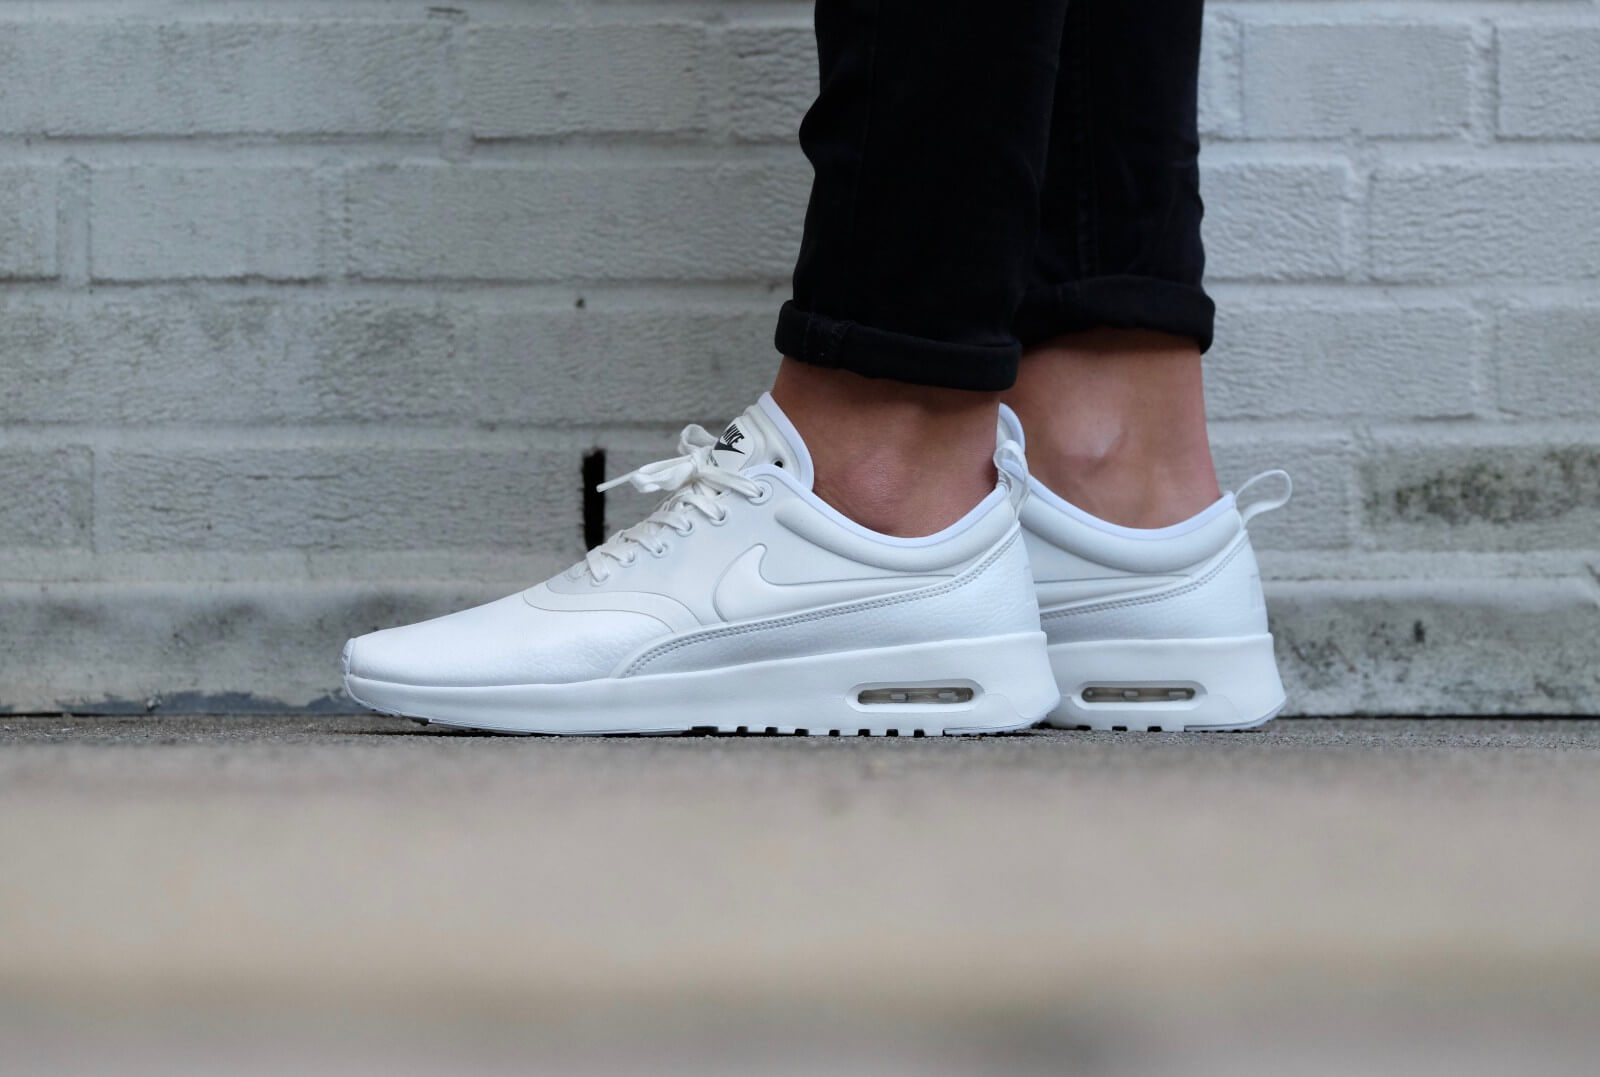 Nike Air Max Thea Ultra SE Women's Shoe. Nike